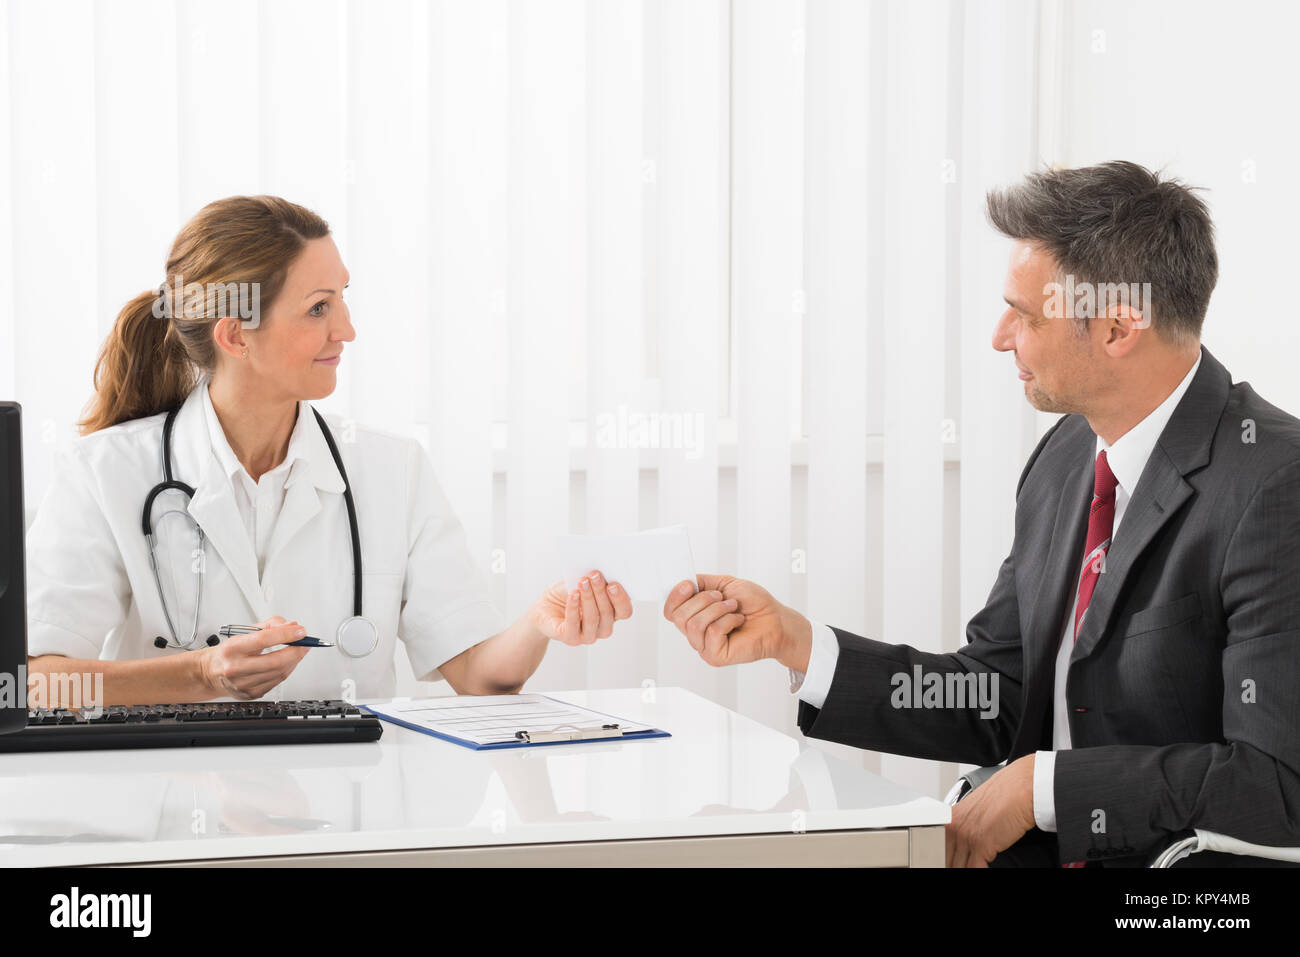 Doctor Giving Prescription To Businessman - Stock Image